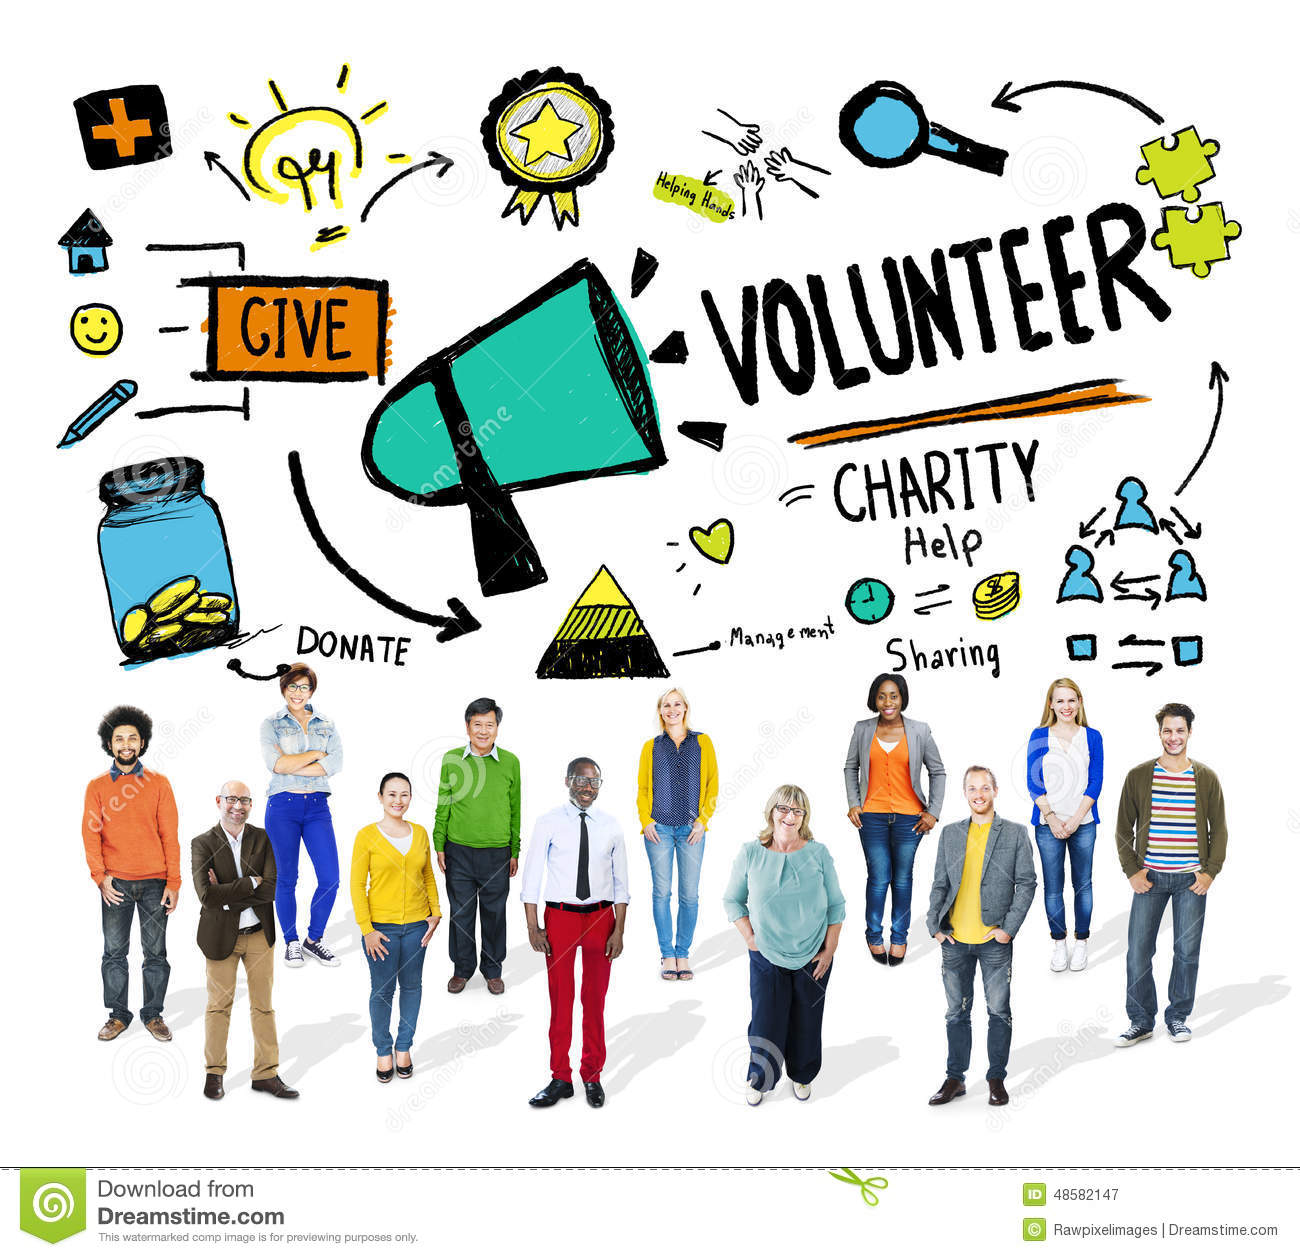 Volunteer charity relief work donation help concept stock for How do foundations work